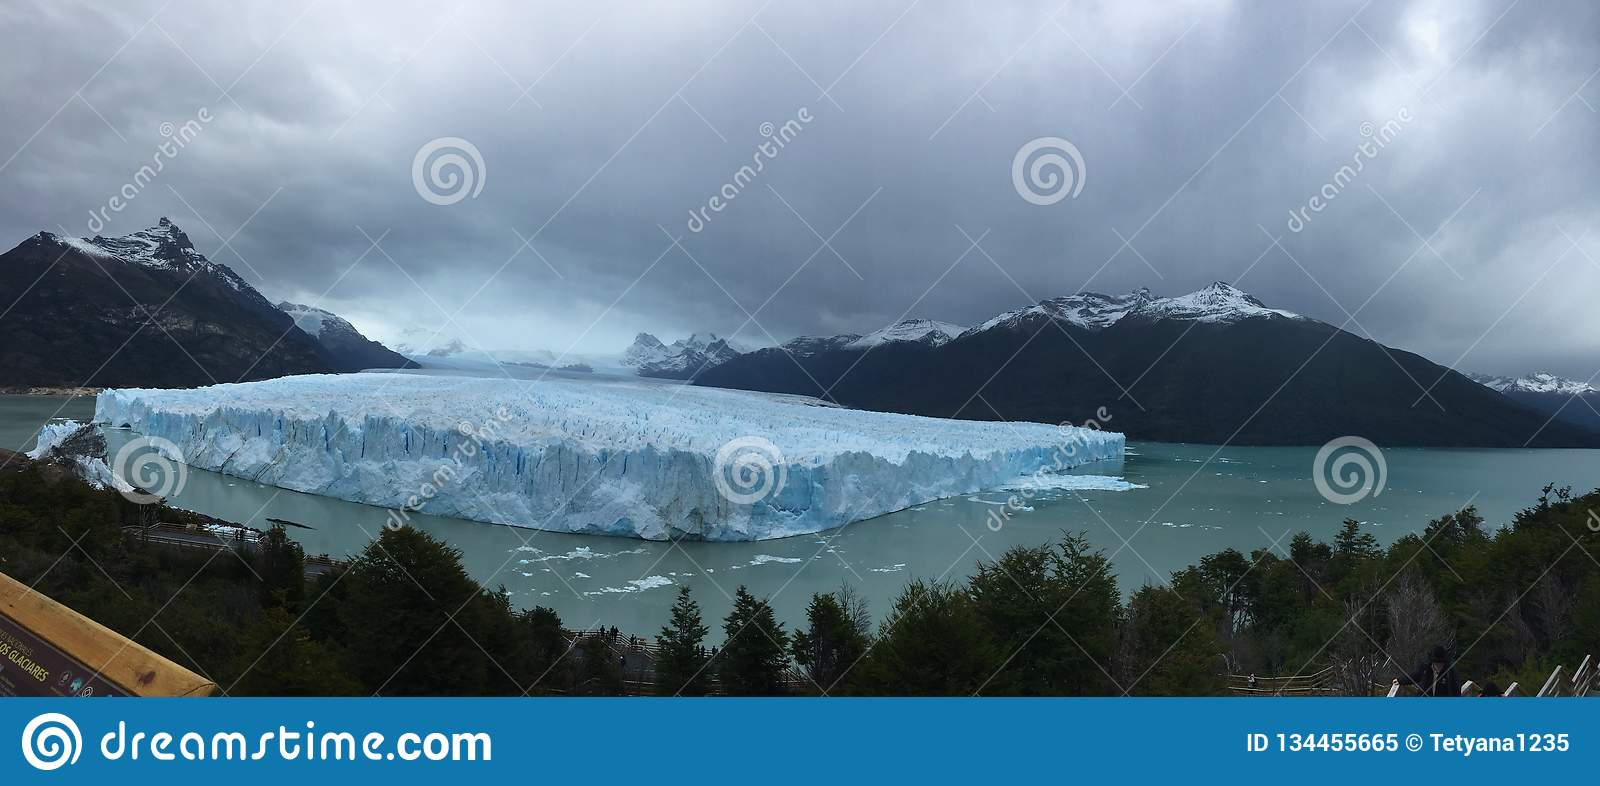 Perito Moreno Glacier - natural phenomenon